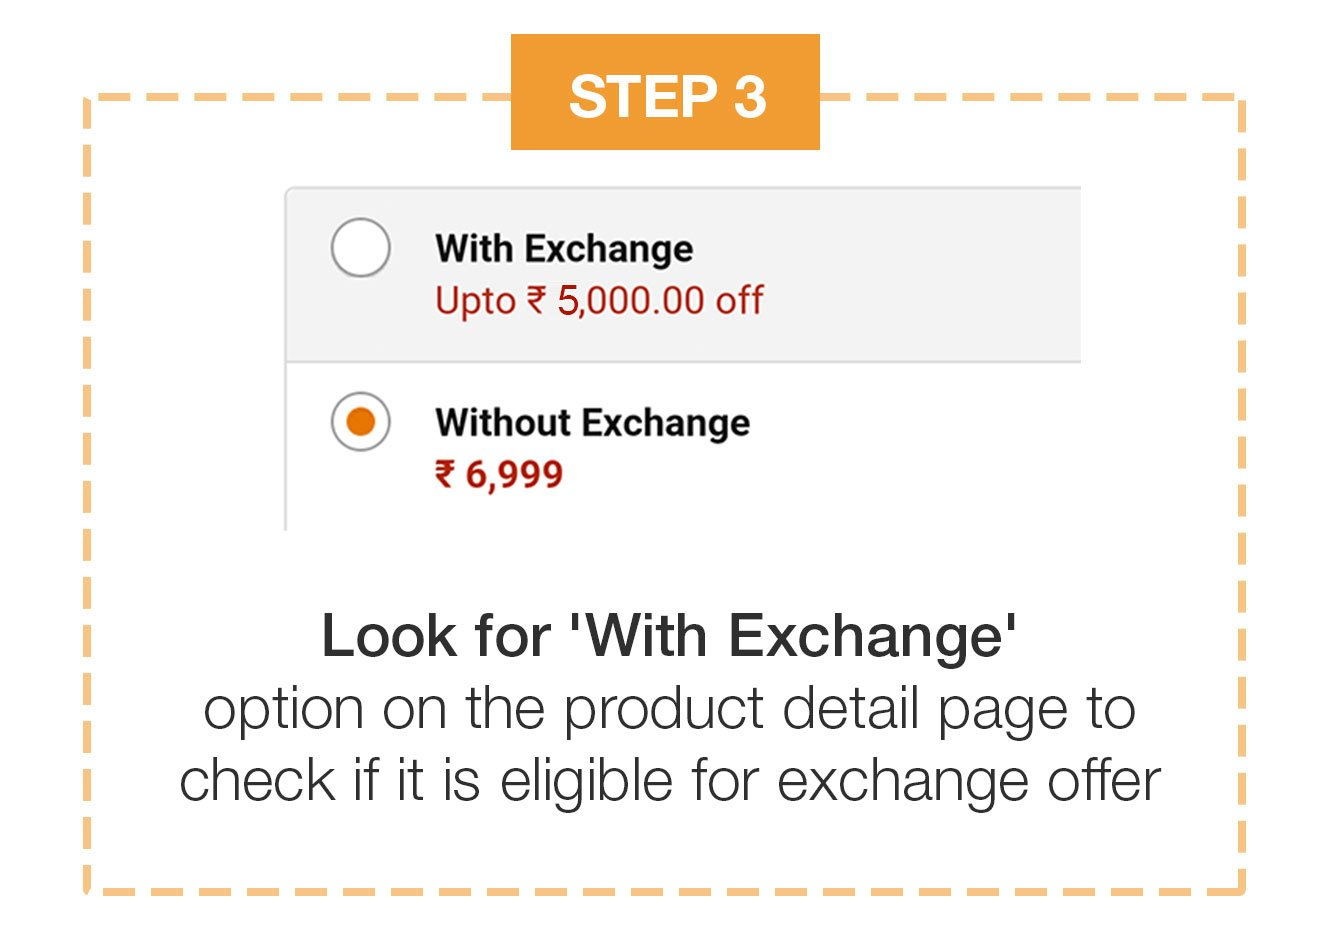 Look for with exchange